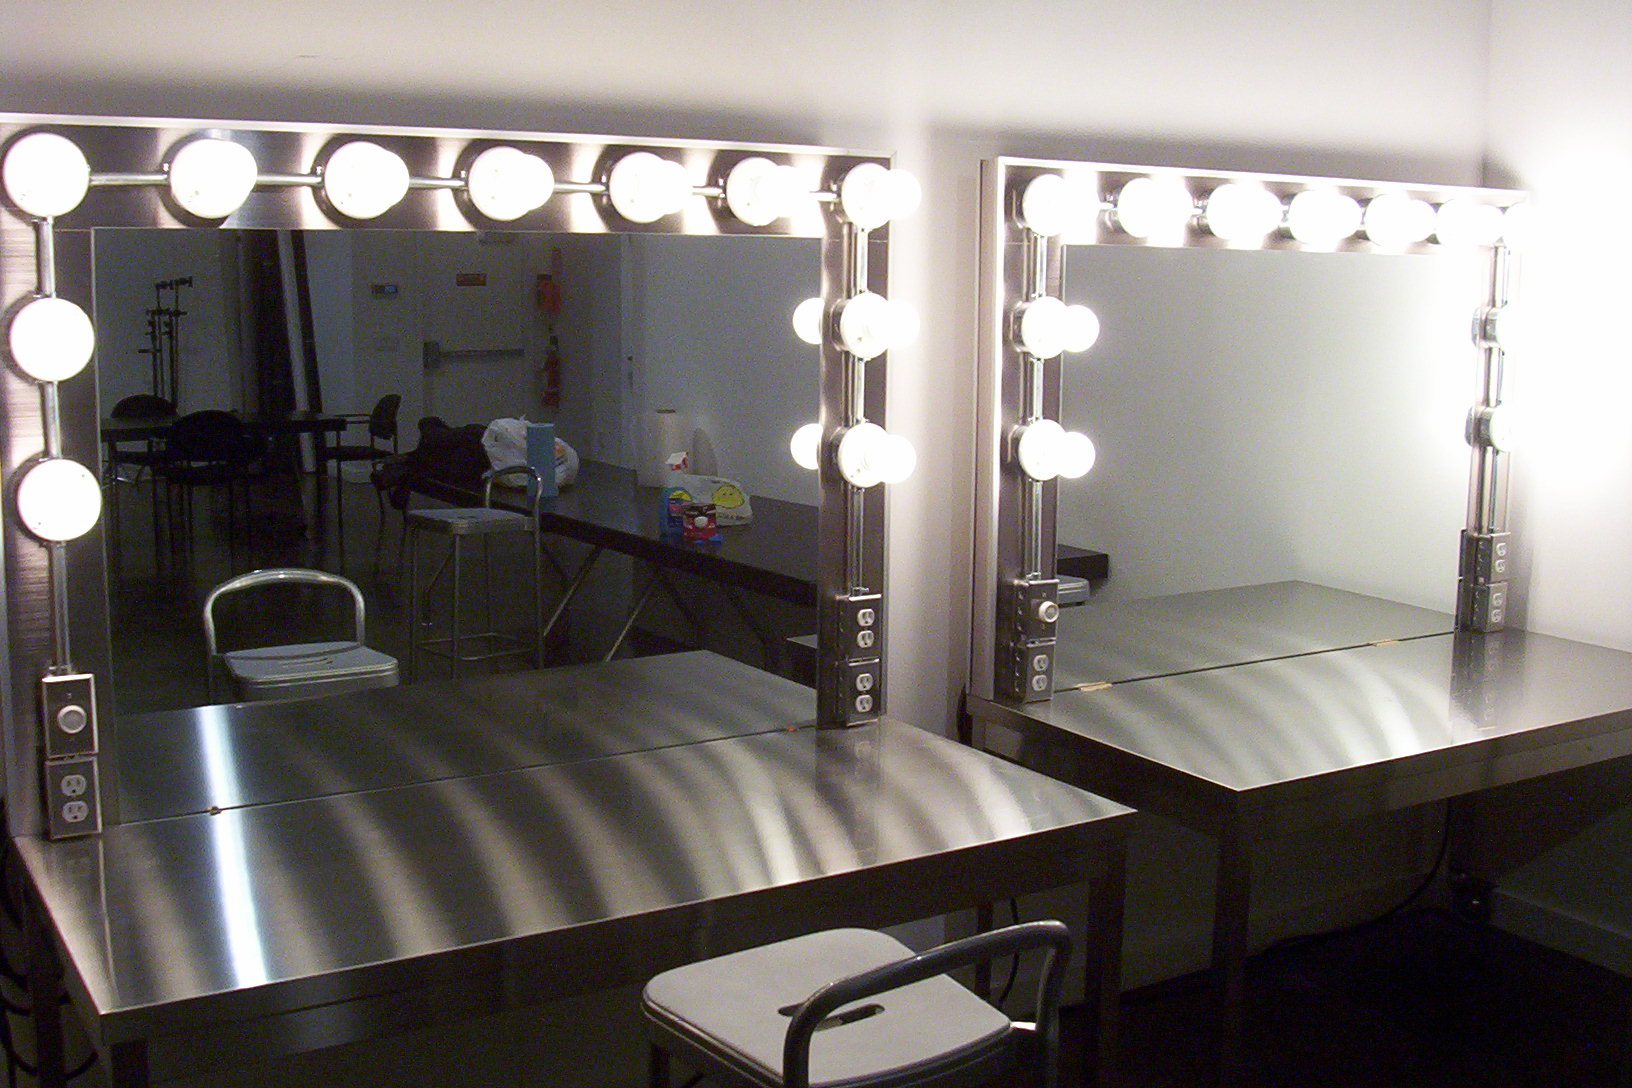 Replacement Makeup Room Lights Controlbooth